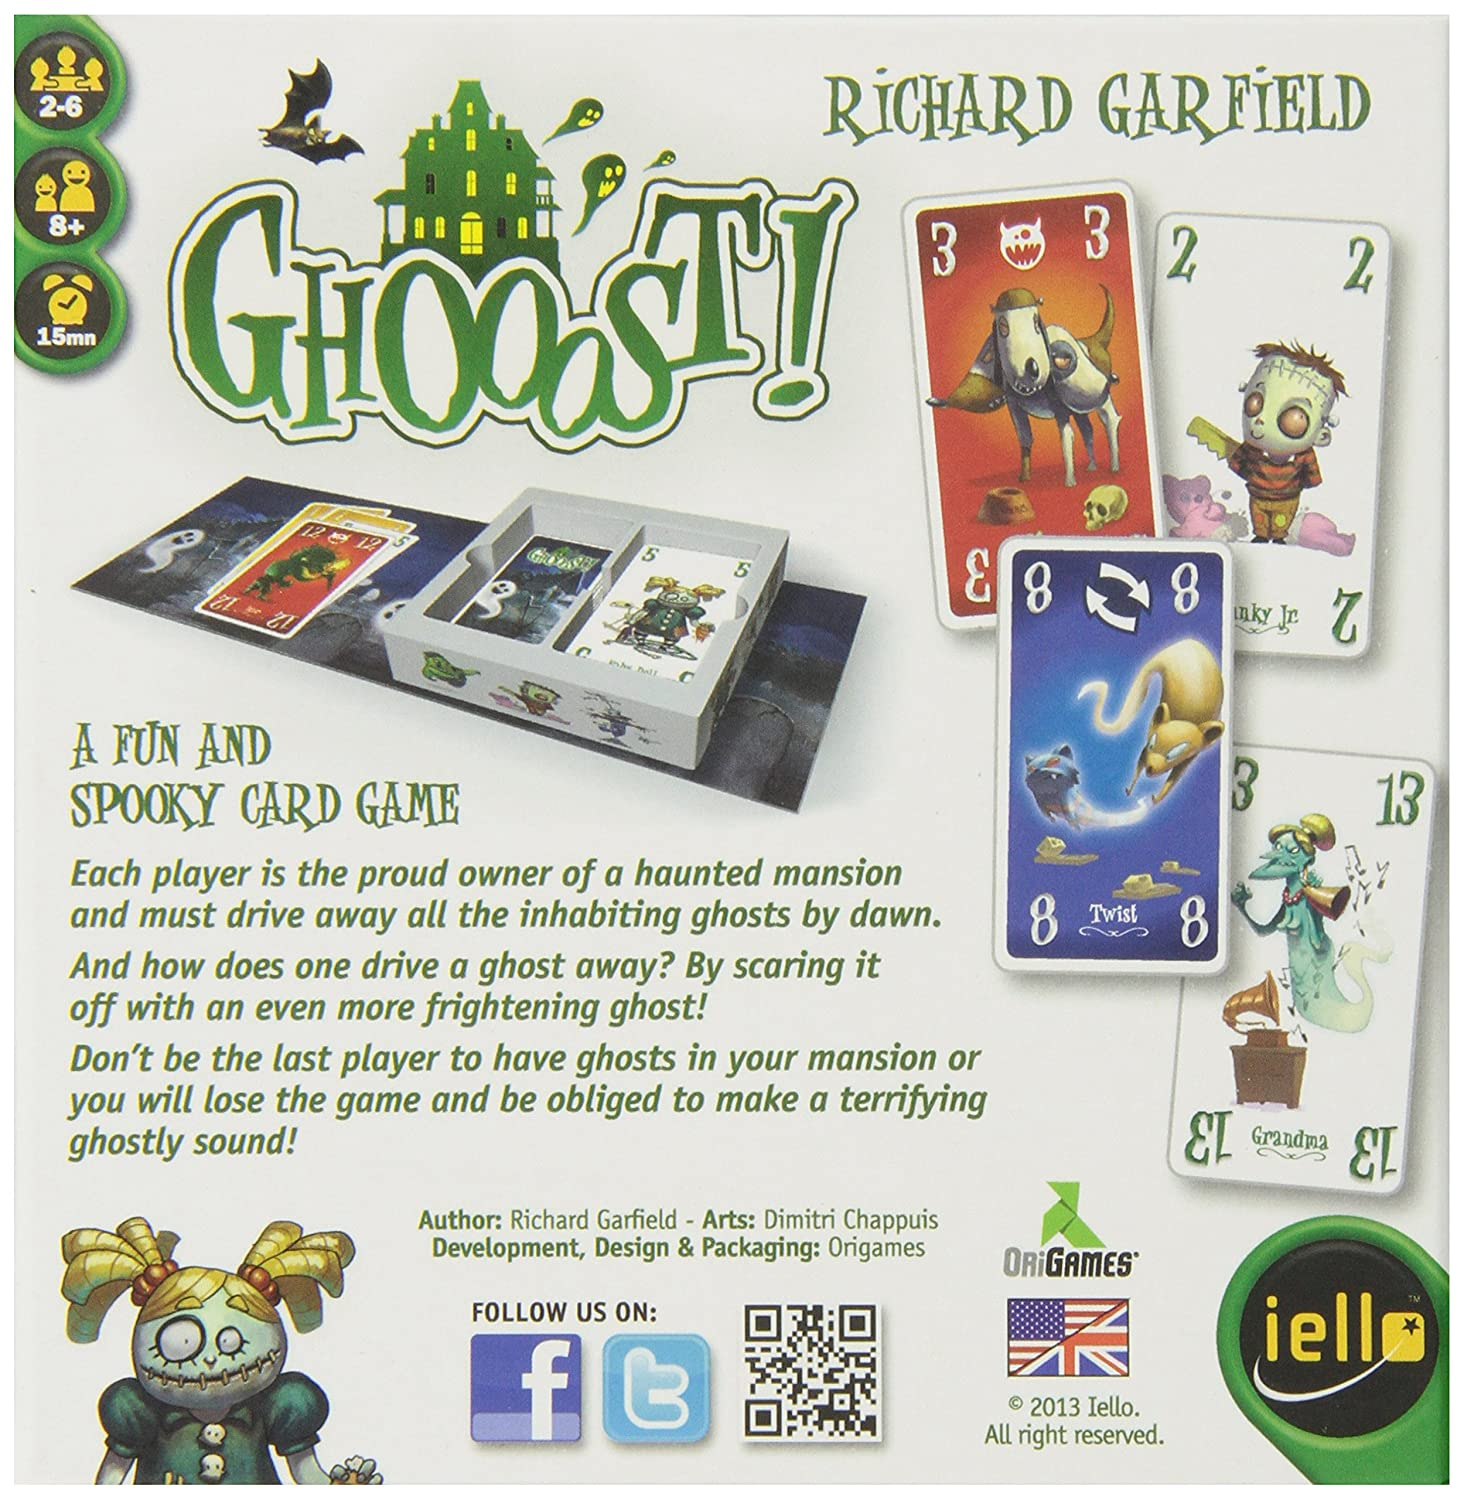 Amazon IELLO Ghooost Card Game Toys Games